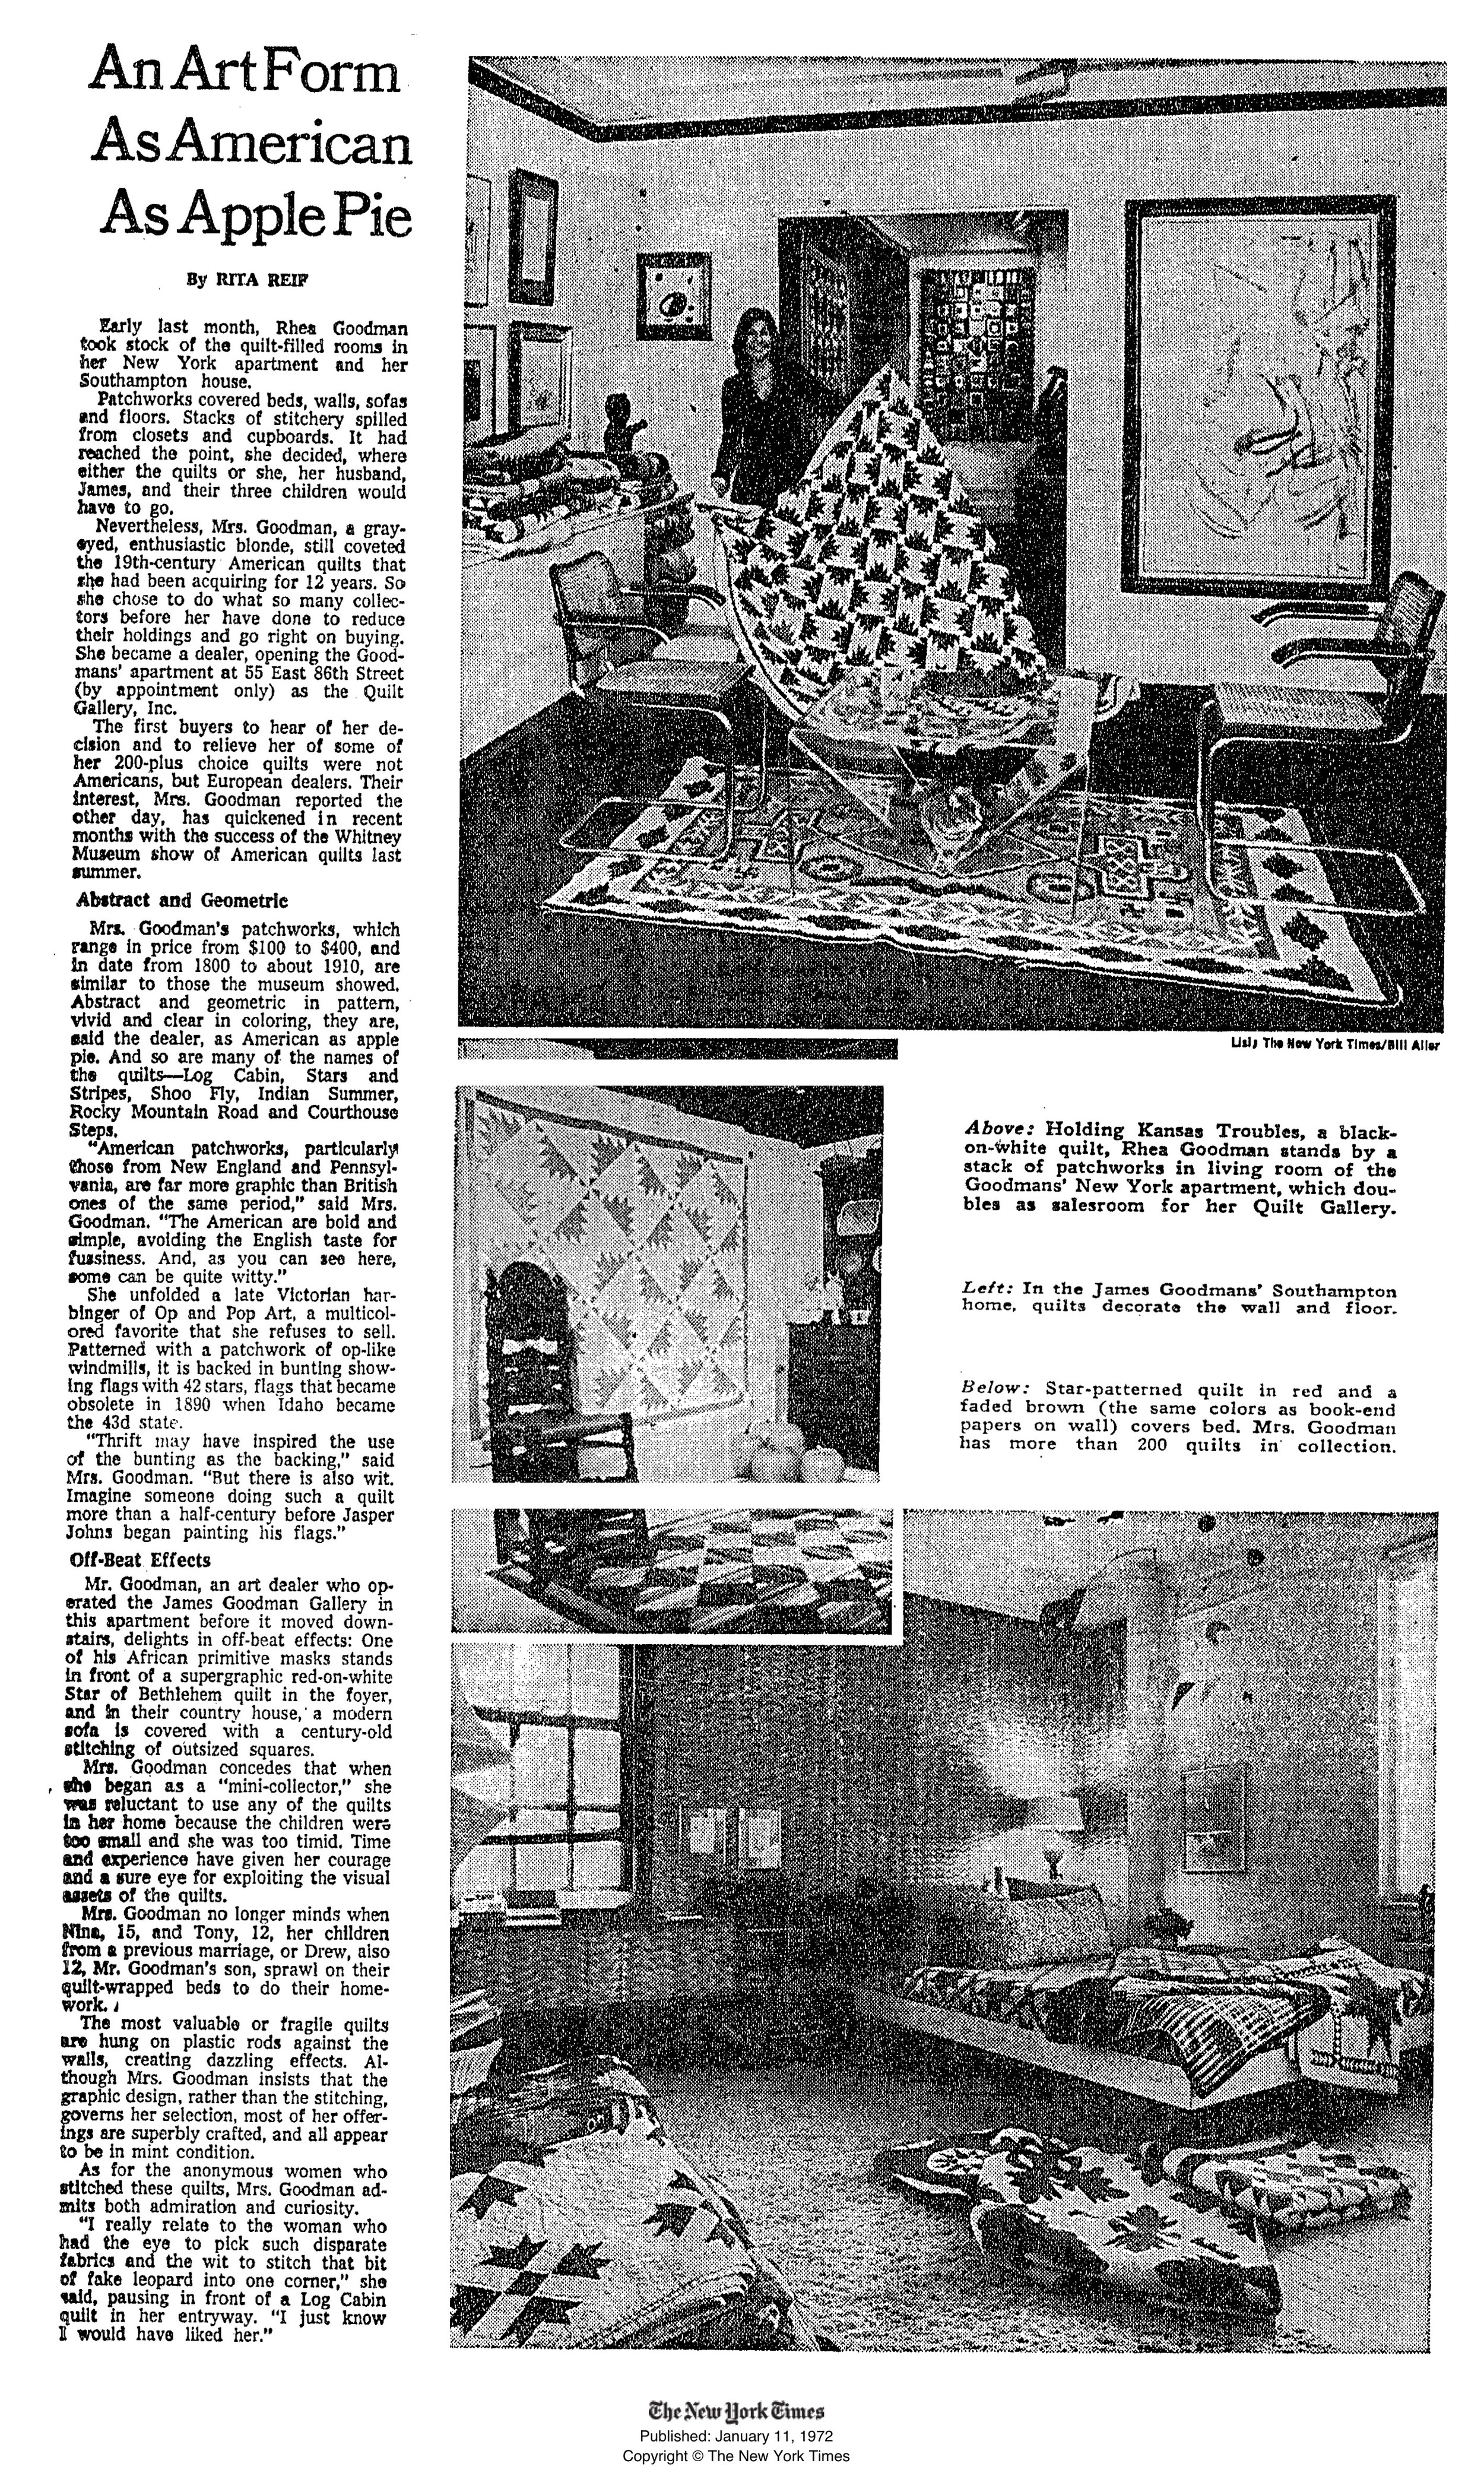 New York Times Article about Quilt Gallery INC., January 11, 1972.